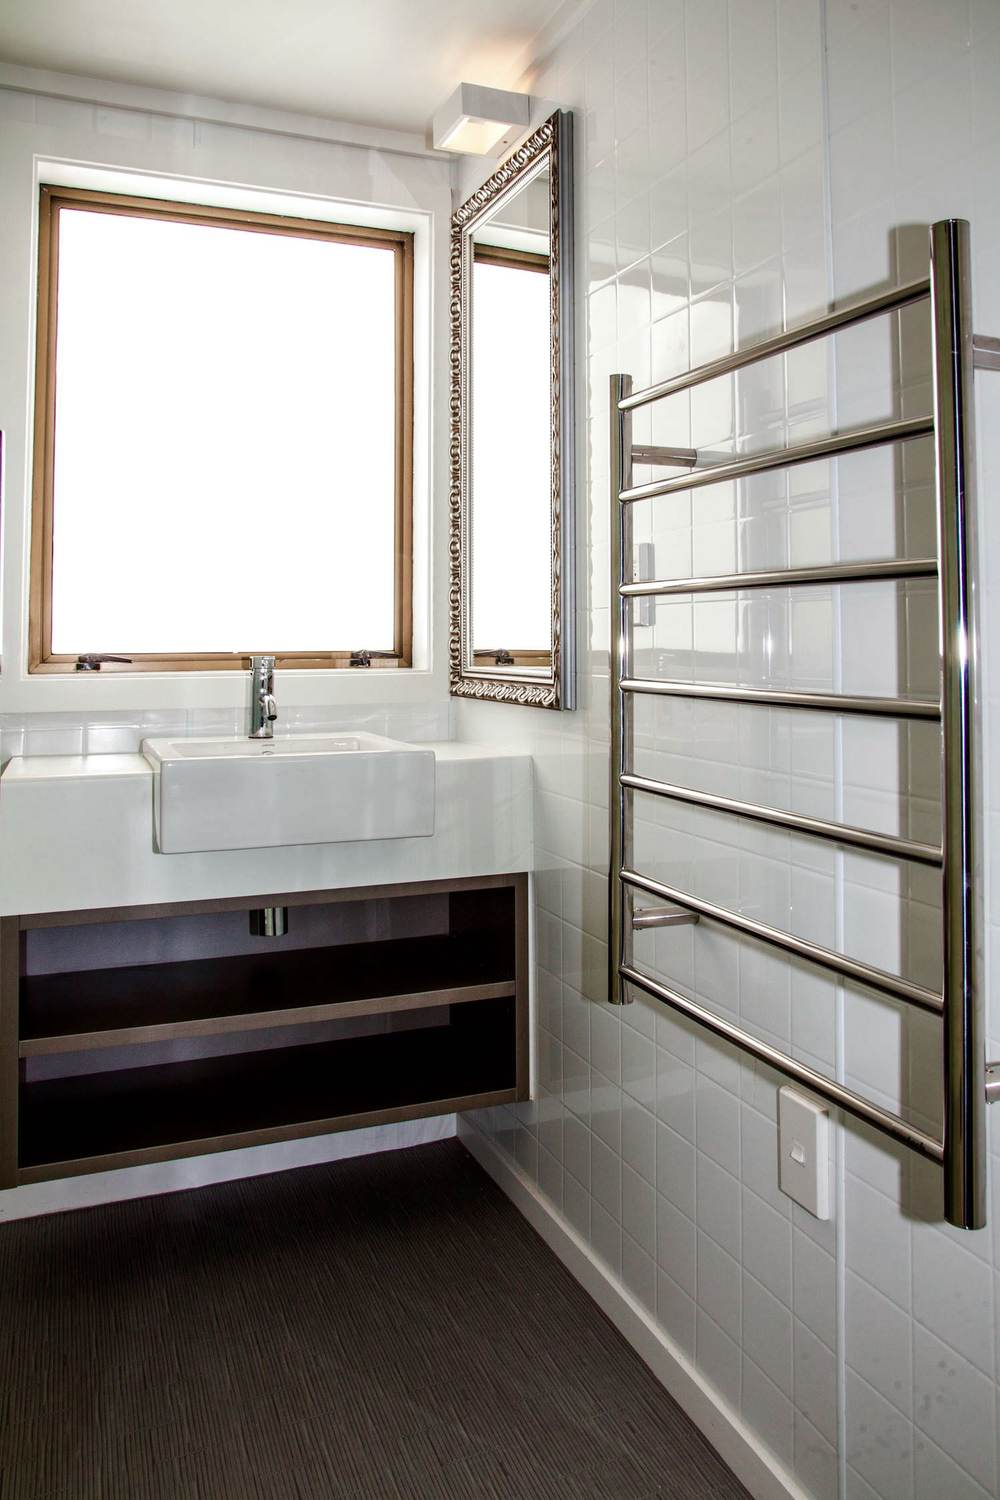 mezzanine - queen bathroom